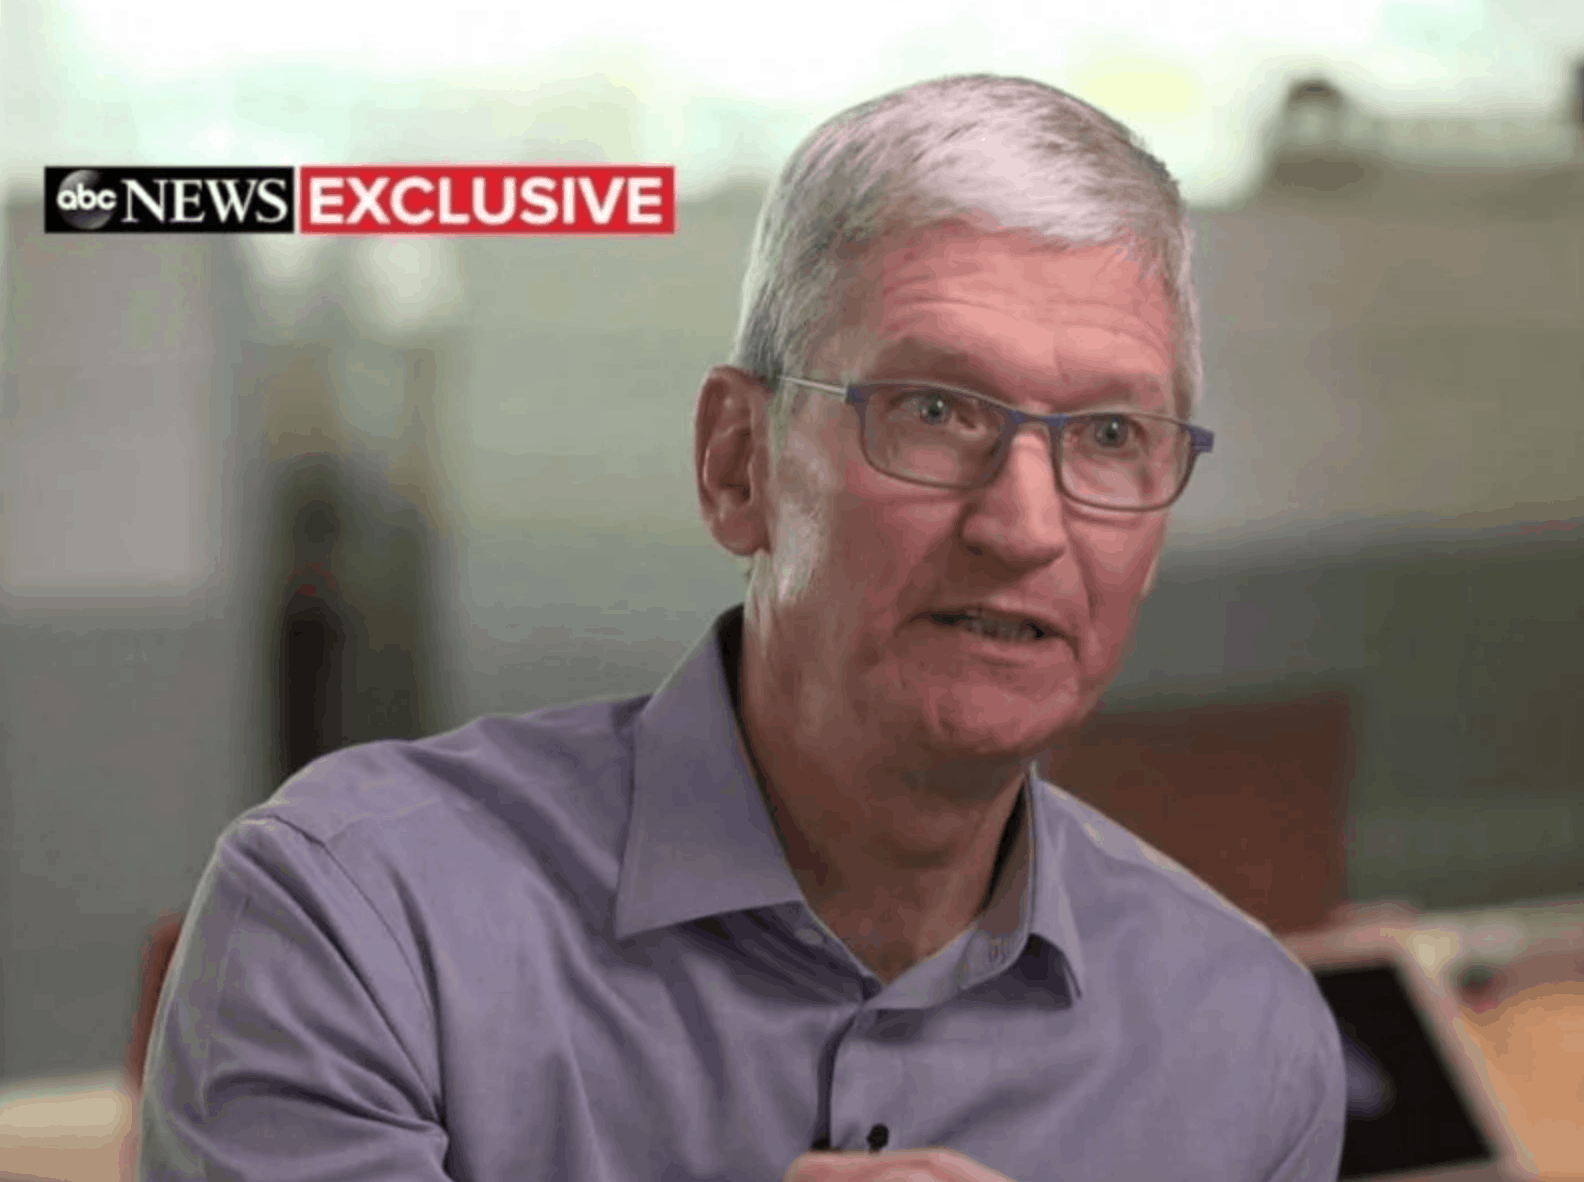 Apple CEO Tim Cook Proclaims Support for DACA